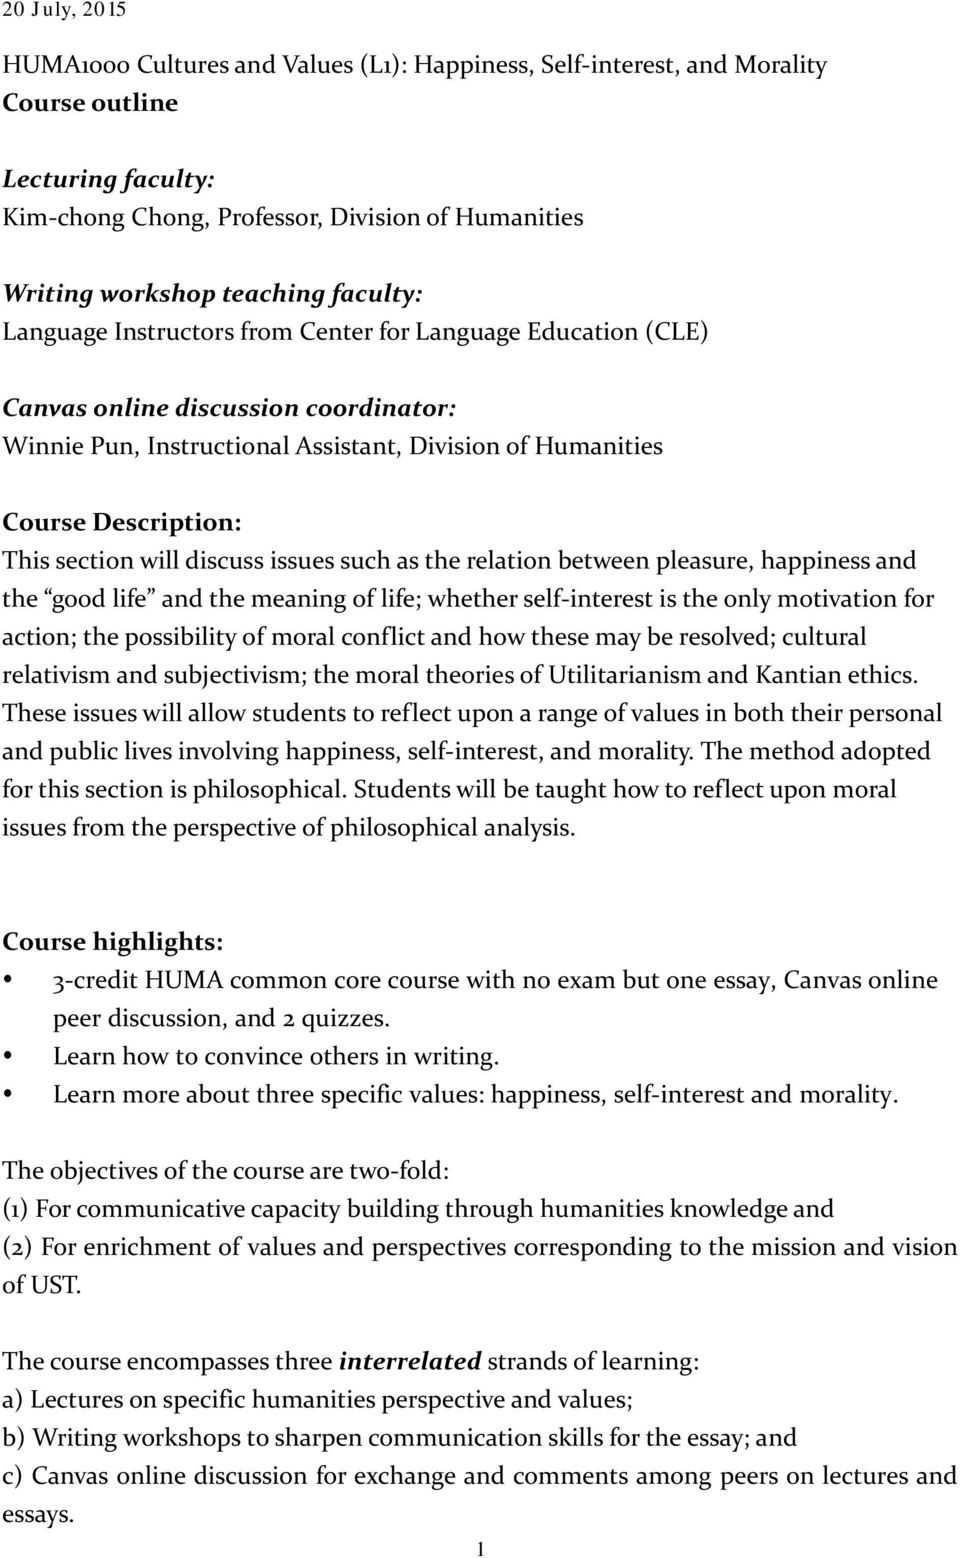 Huma Cultures And Values L Happiness Selfinterest And  Discuss Issues Such As The Relation Between Pleasure Happiness And The  Good Life And The Business Plan Writer Toronto also High School Memories Essay  English Essay On Terrorism